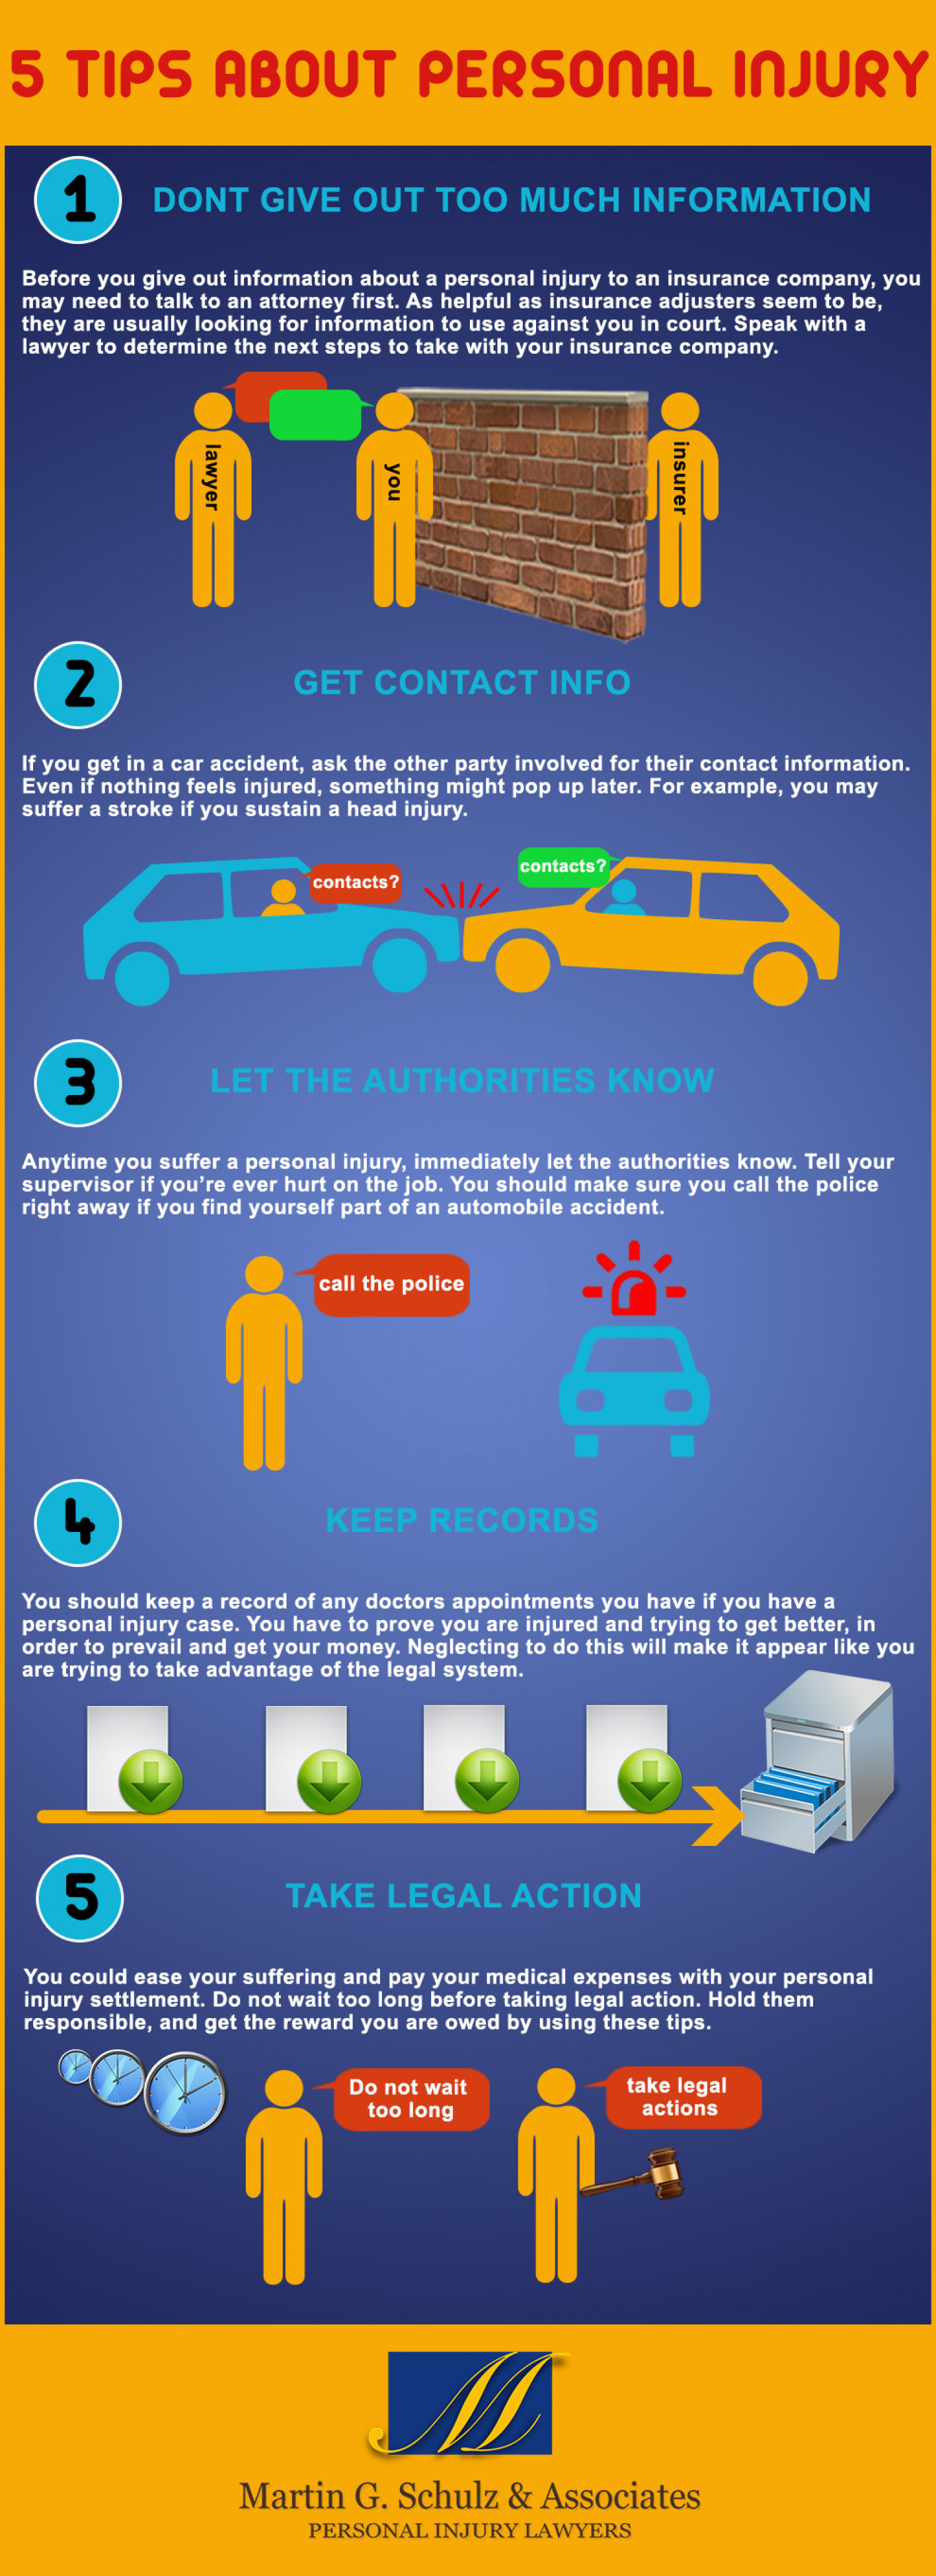 personal-injury-tips-from-a-law-firm_520